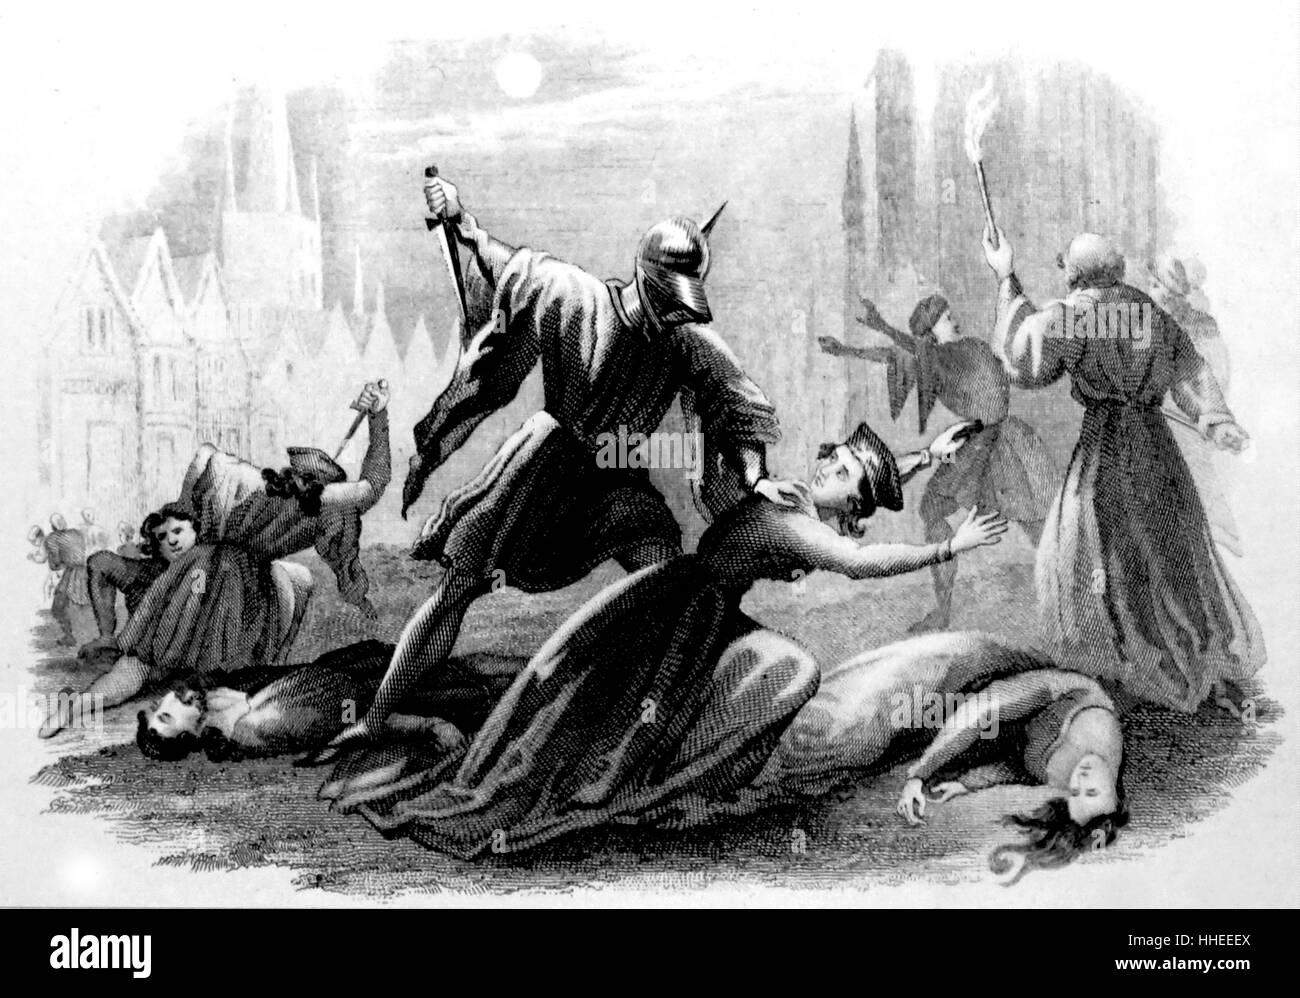 Scene from the St. Bartholomew's Day Massacre. a targeted group of assassinations and a wave of Catholic mob violence, directed against the Huguenots (French Calvinist Protestants) during the French Wars of Religion. Dated 16th Century Stock Photo